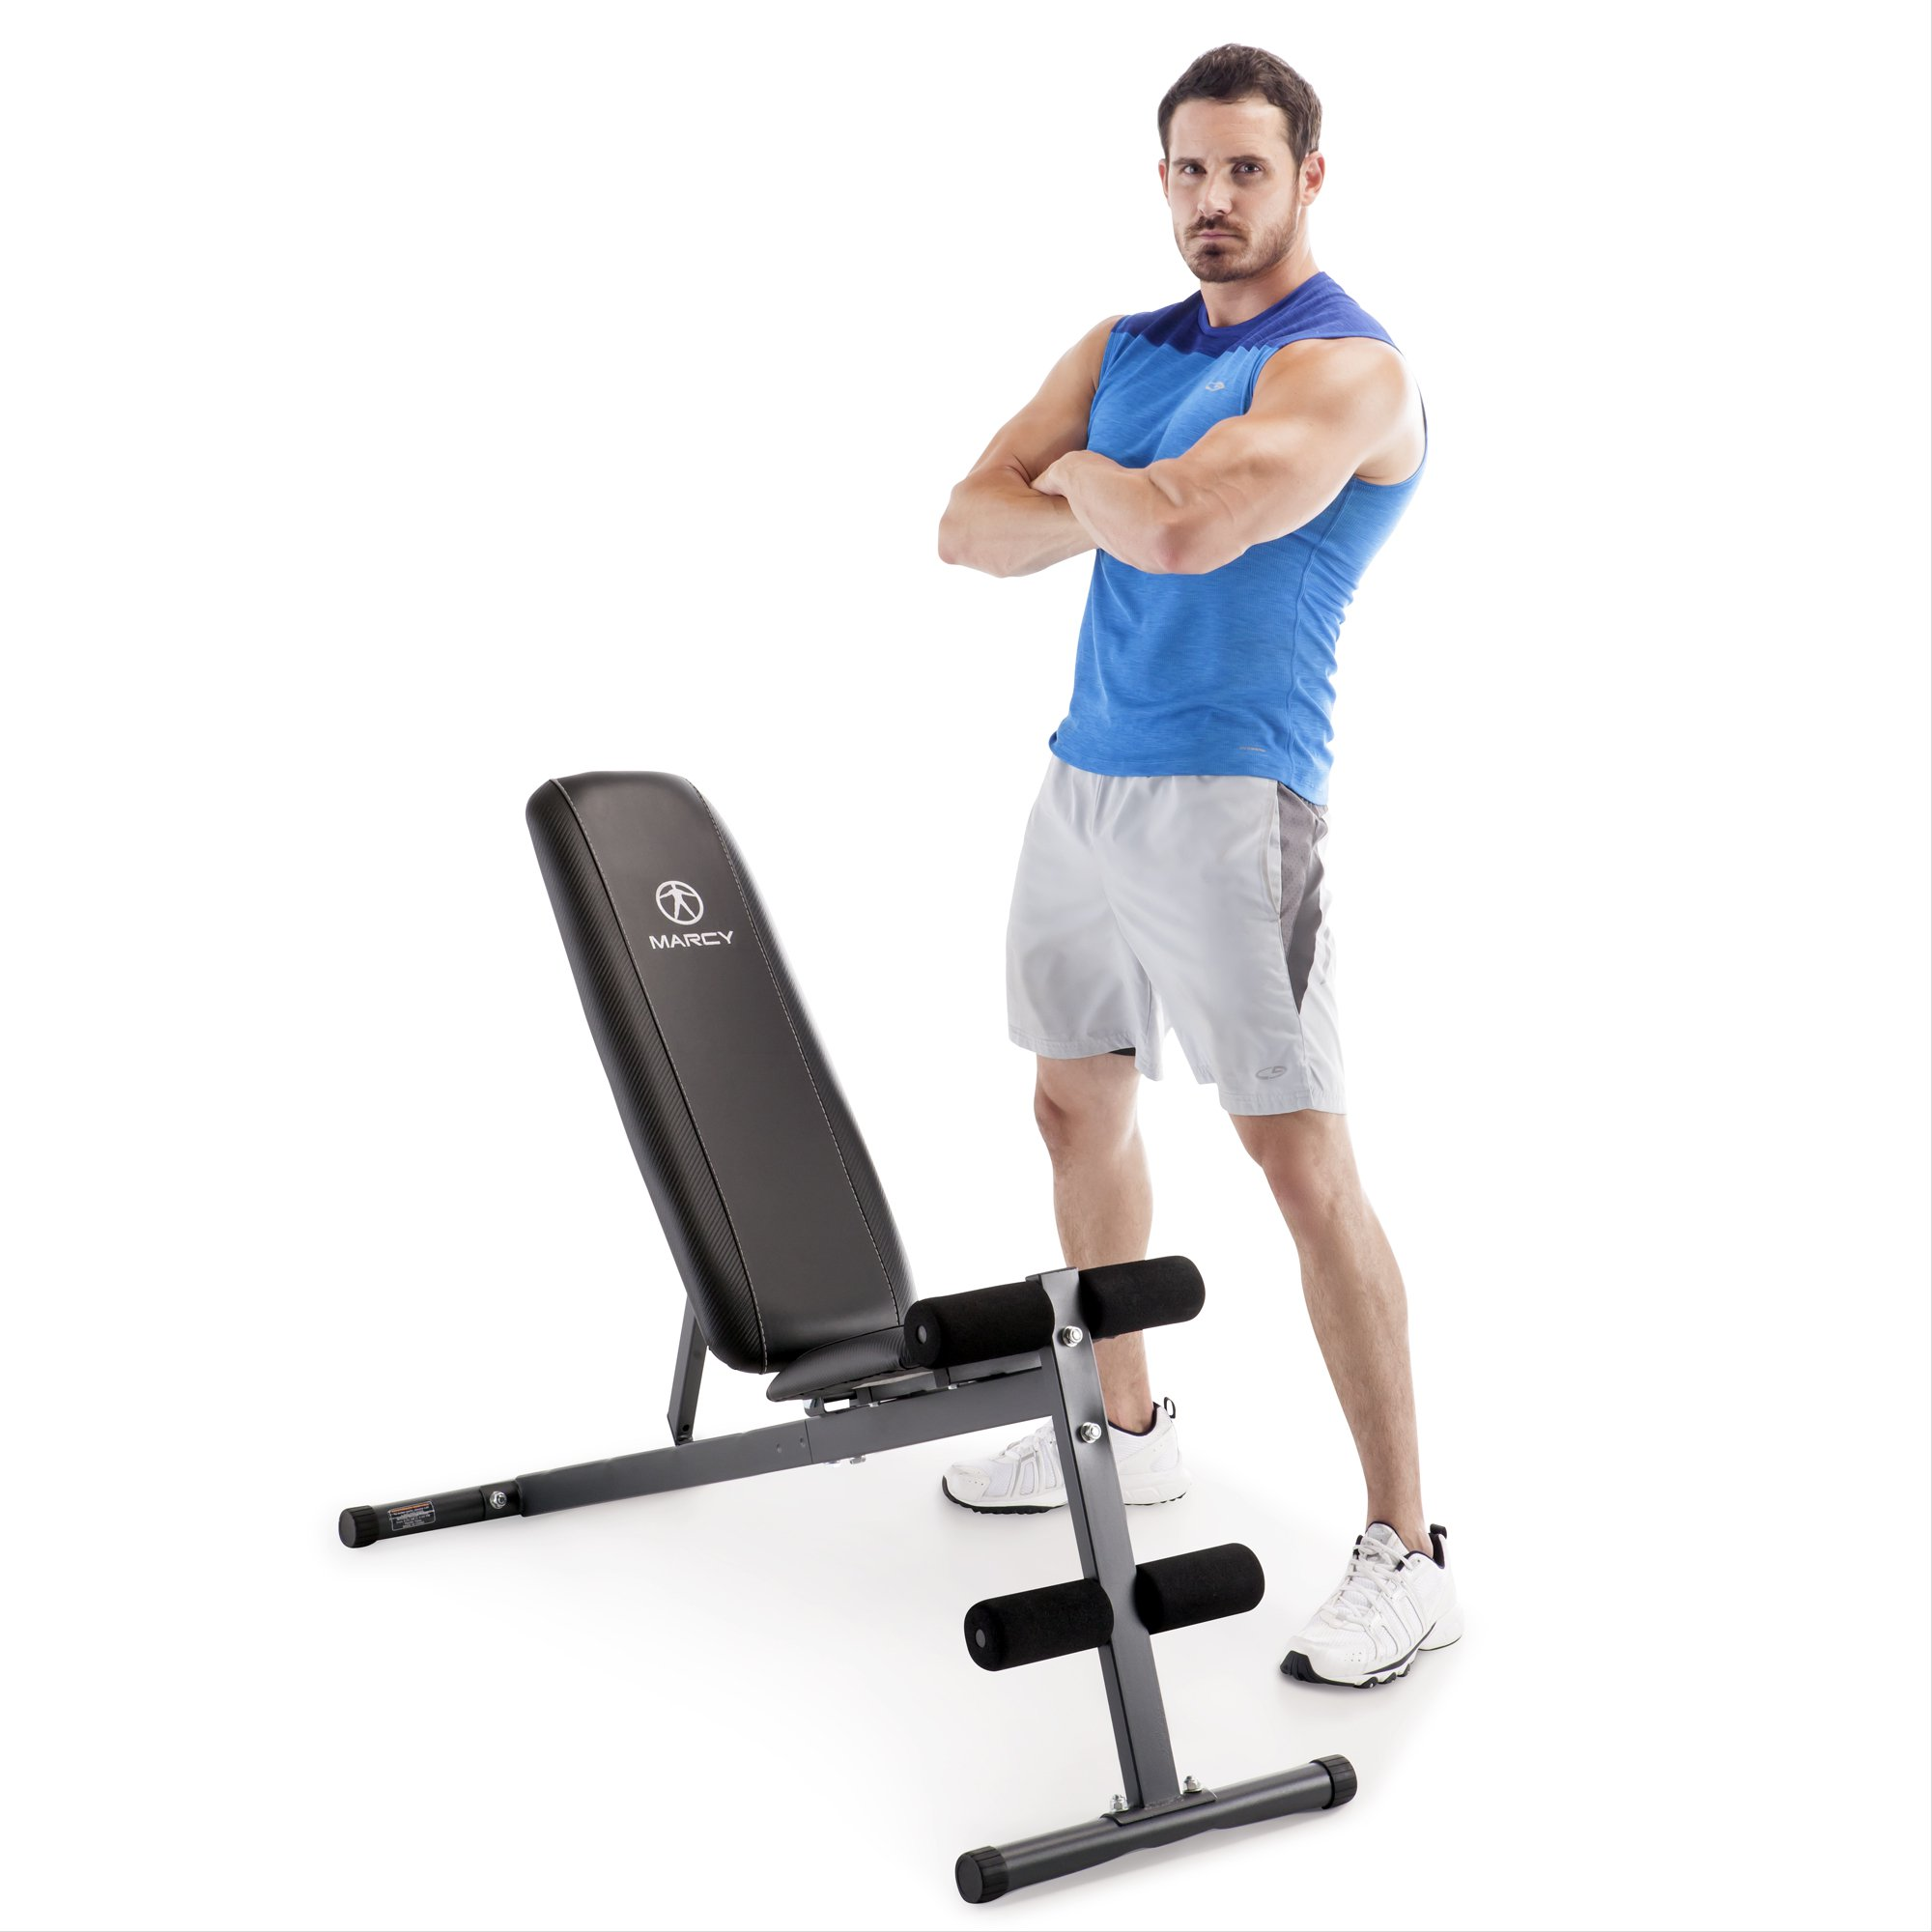 Marcy Pro Adjustable Home Gym Utility Exercise Weight Training Workout Bench